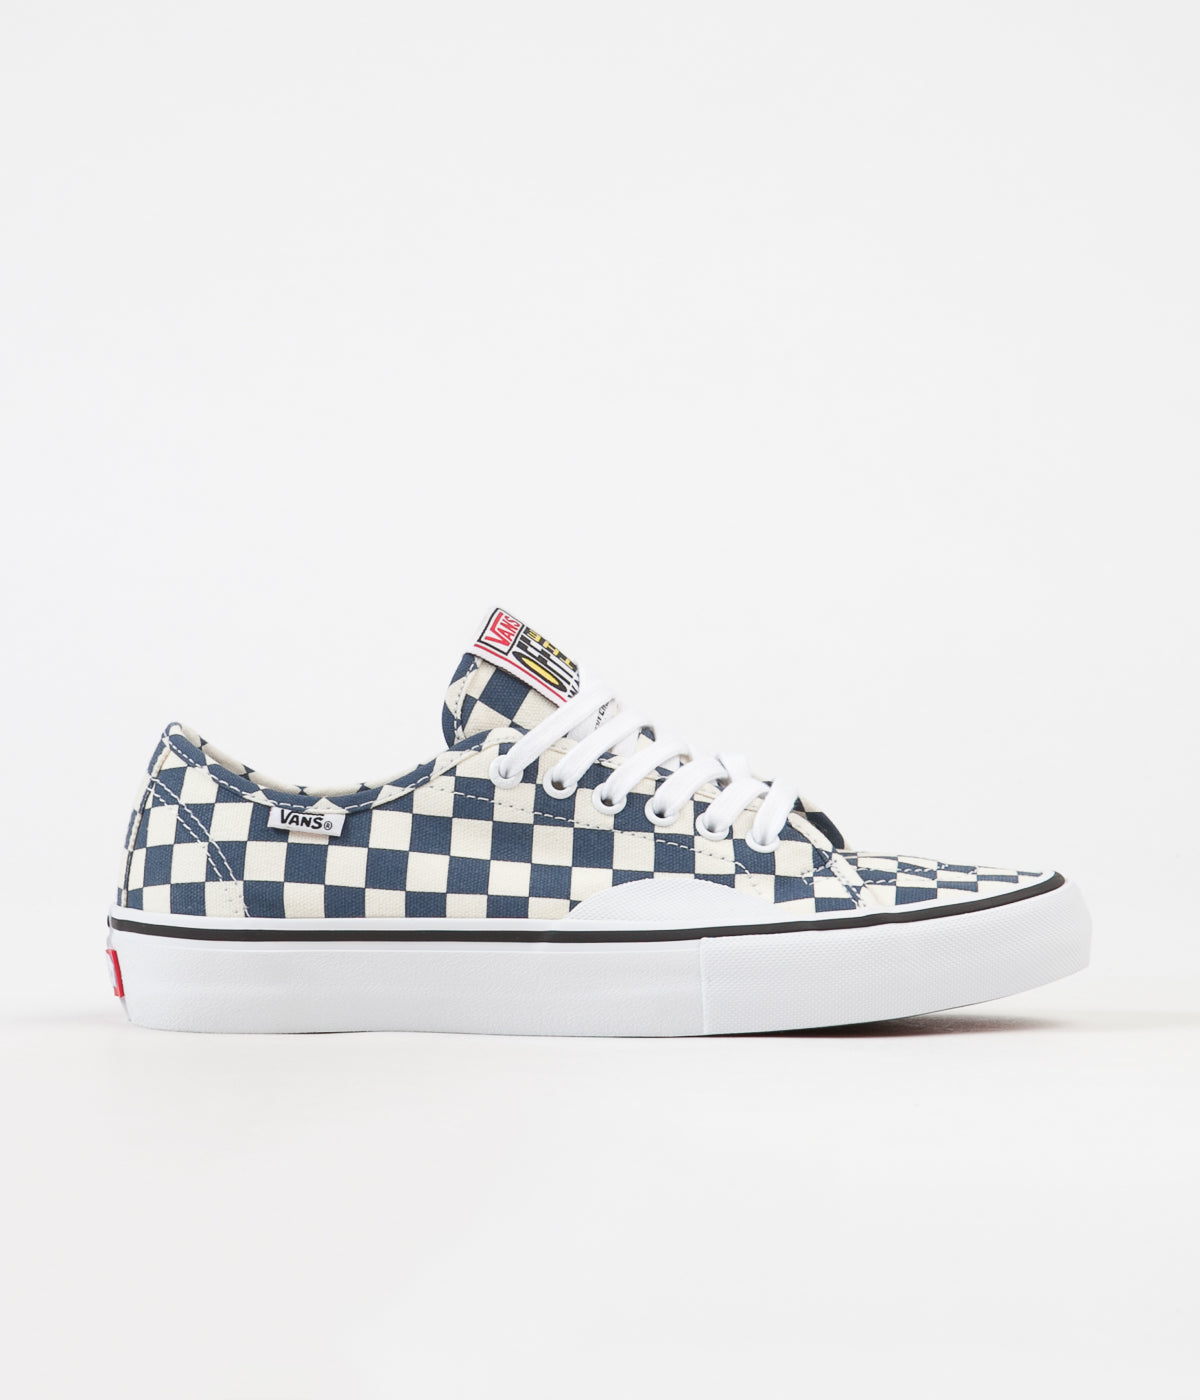 Vans AV Classic Pro Checkerboard Shoes - Dark Denim